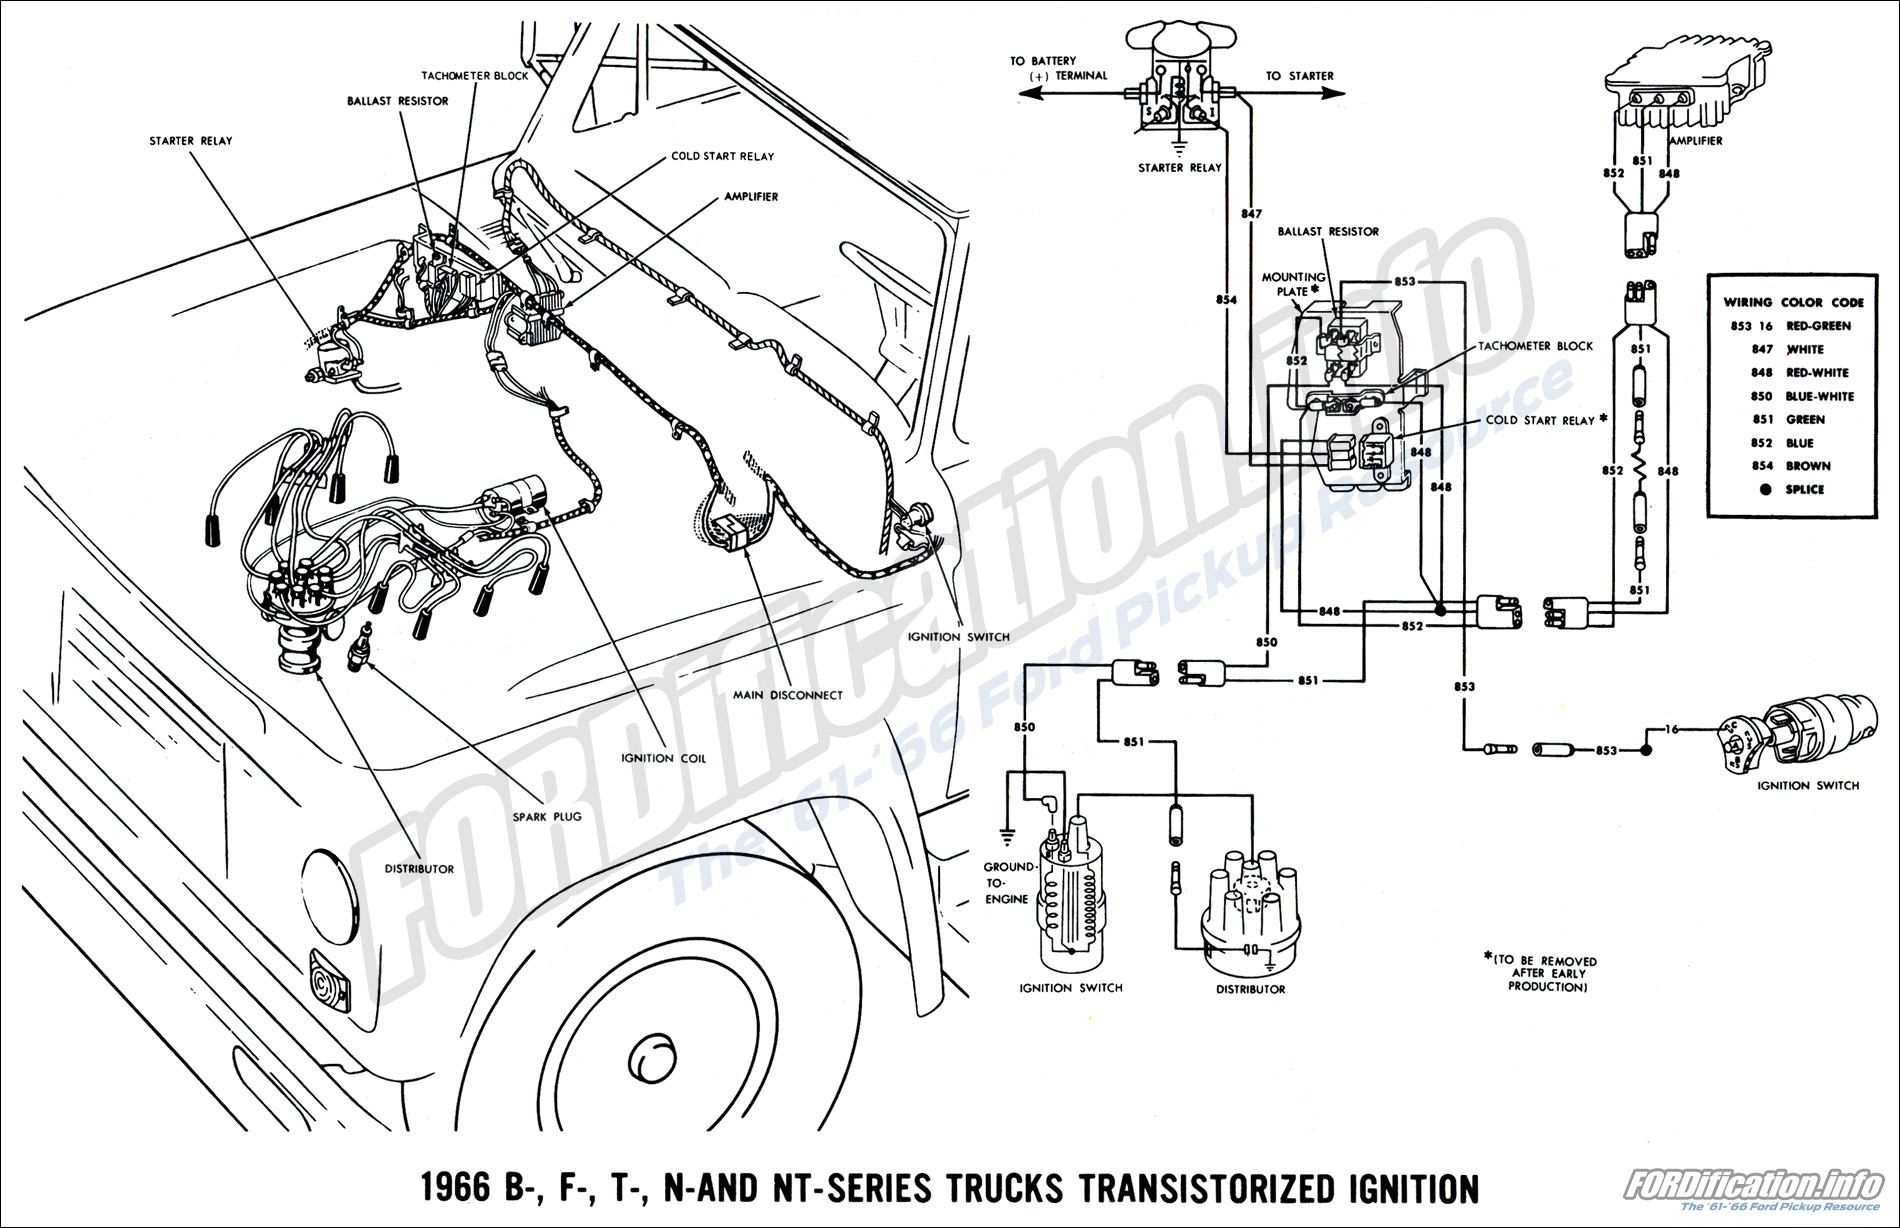 1966 ford truck wiring diagrams - fordification.info - the ... 1963 ford truck f 100 wiring diagrams 1963 ford truck ignition wiring diagram